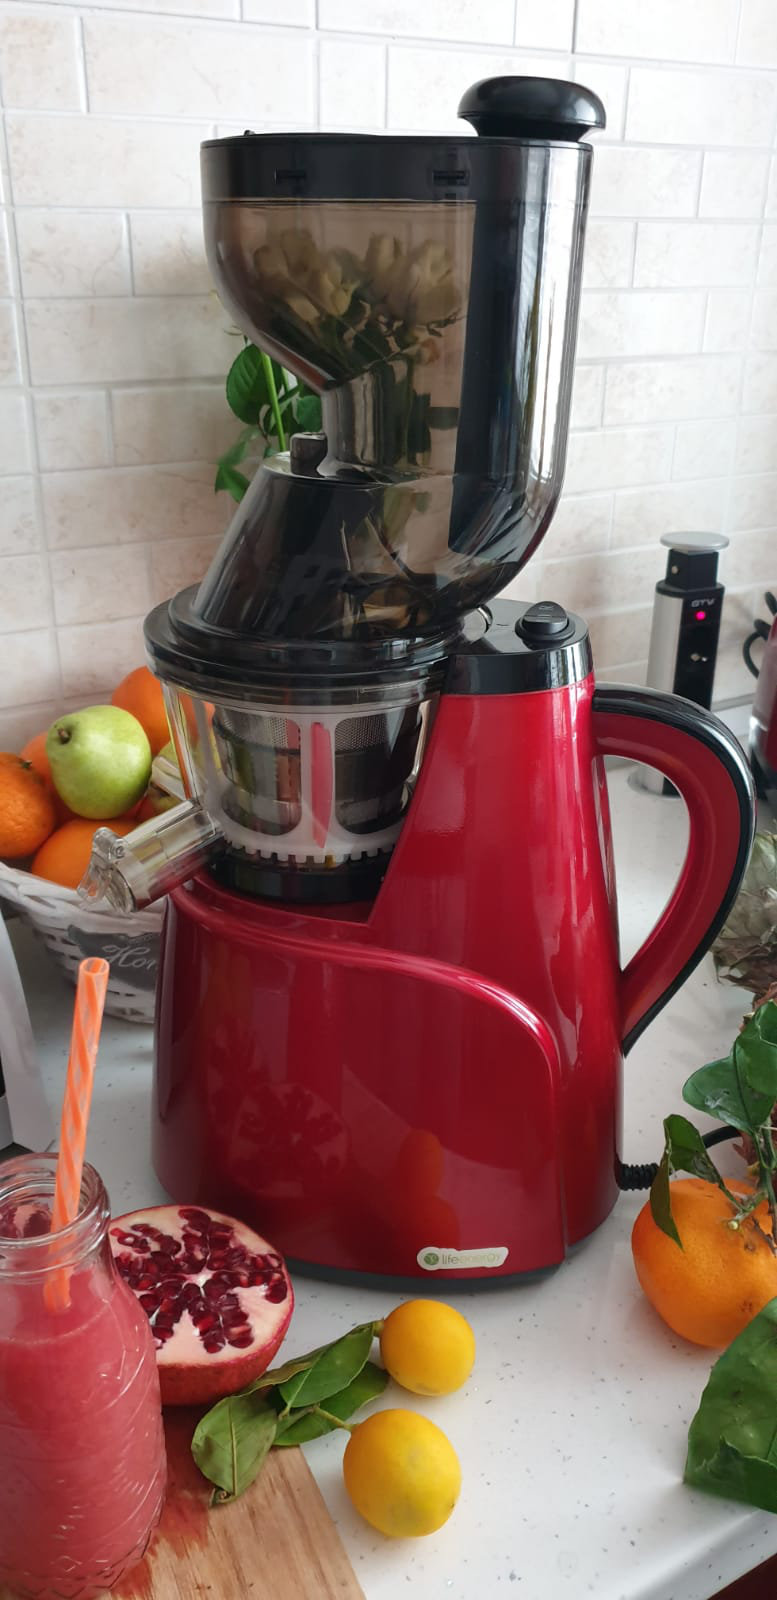 ORIGINAL big mouth slow juicer